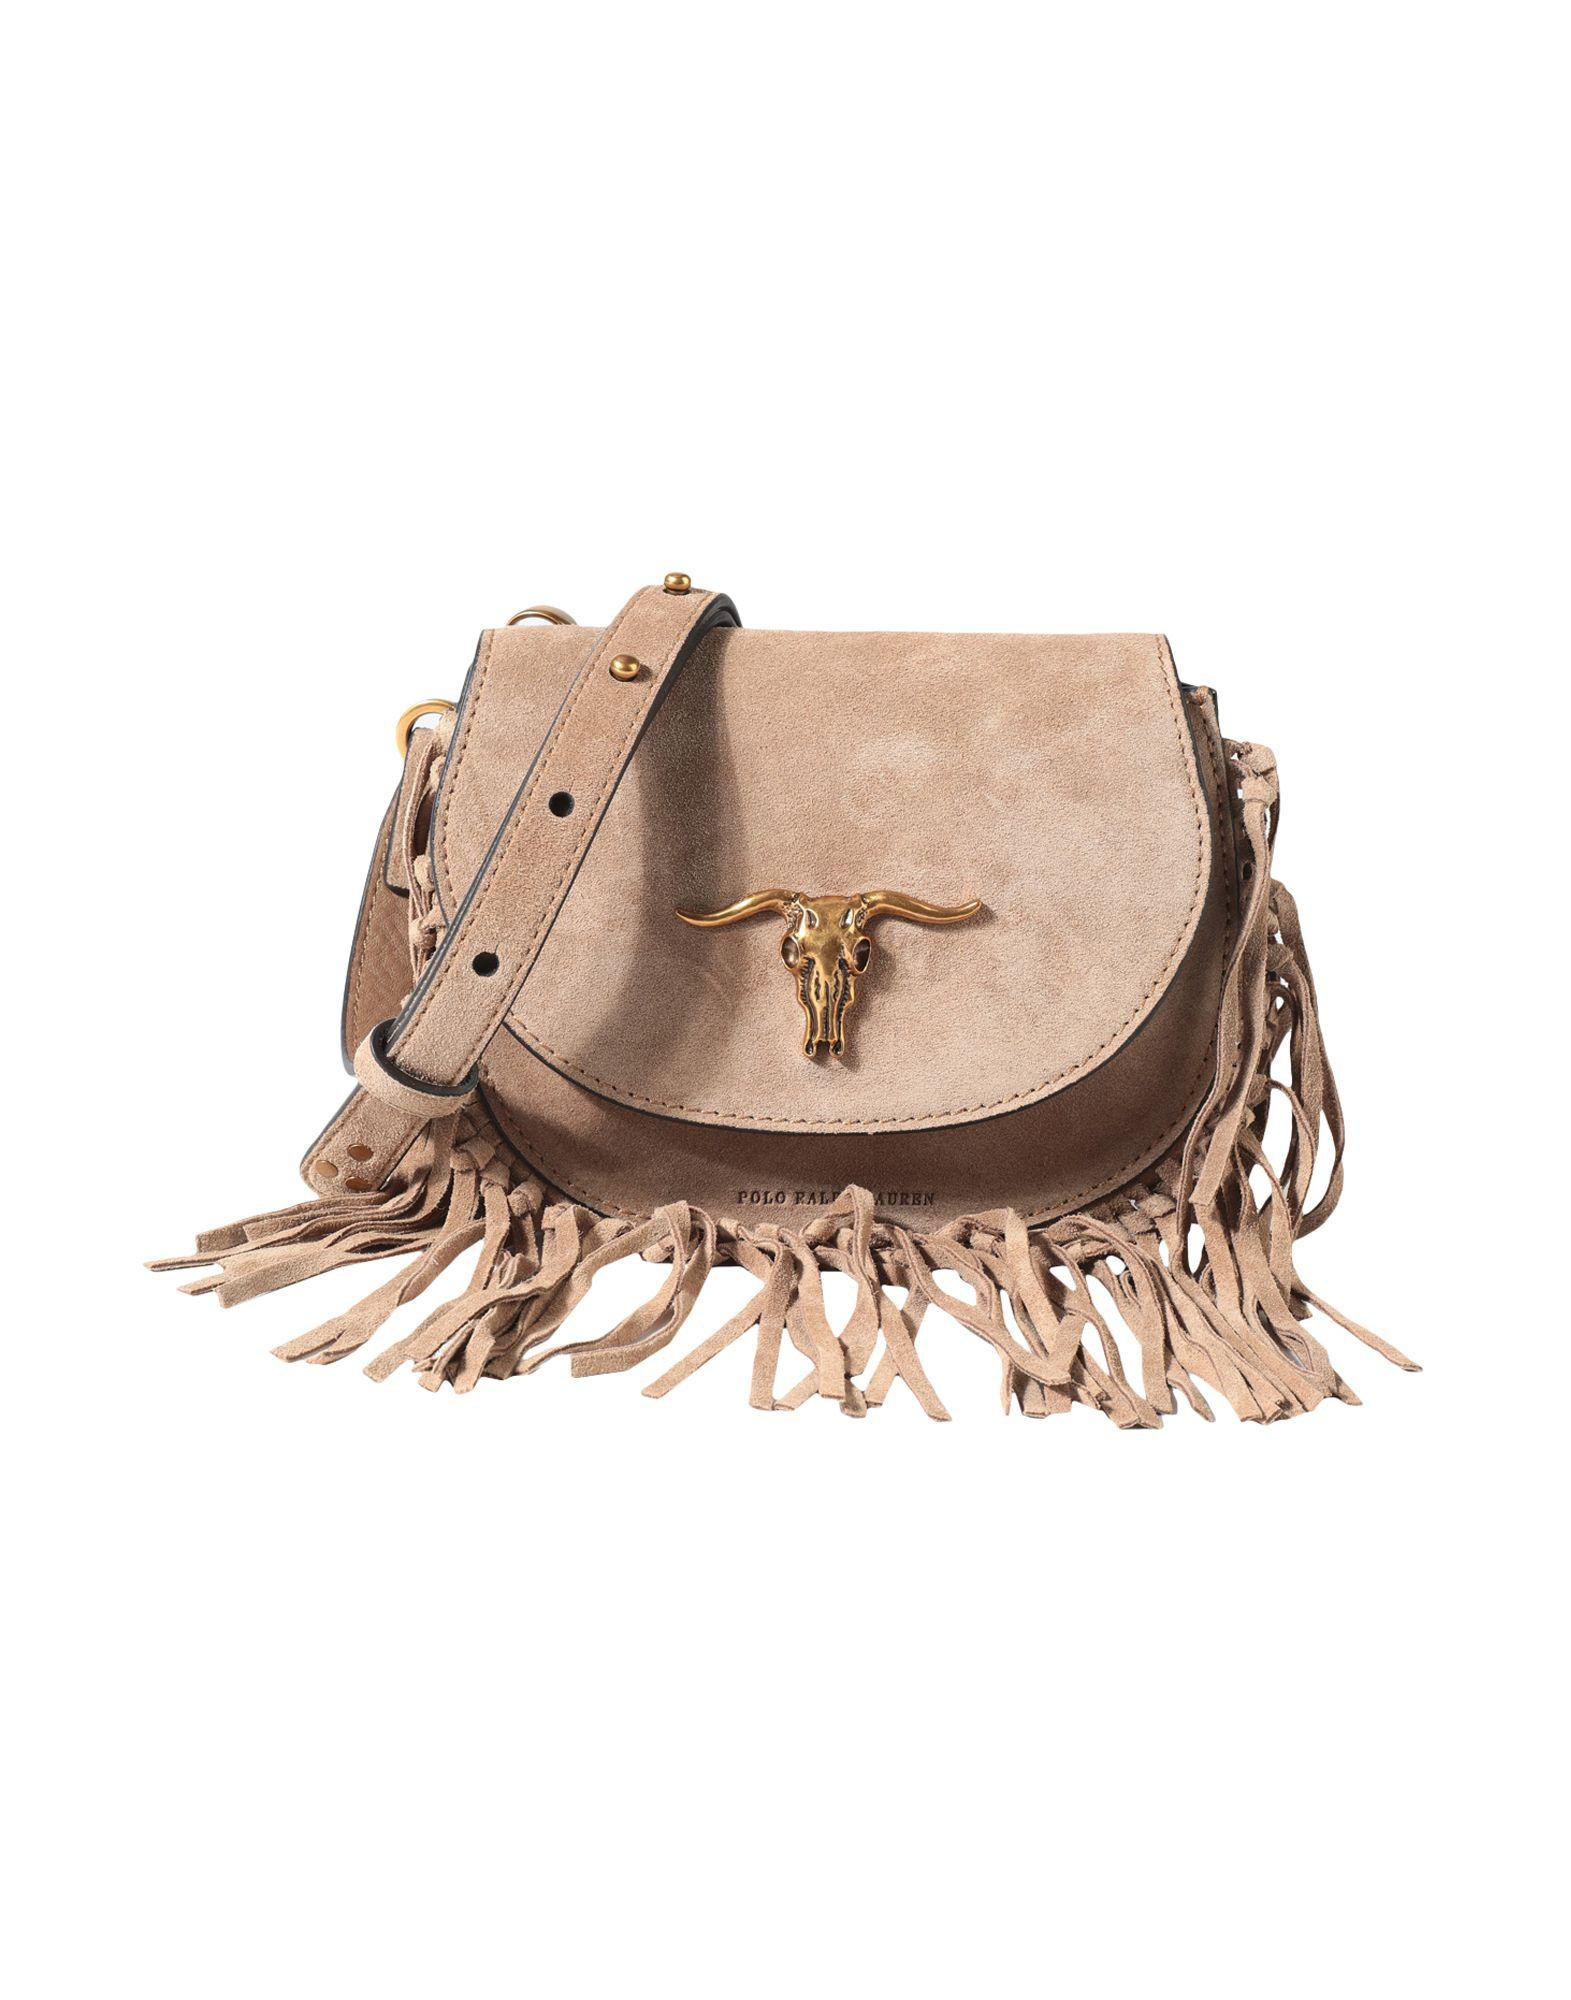 e3210918f1 Polo Ralph Lauren Cross-body Bag in Natural - Save 48% - Lyst